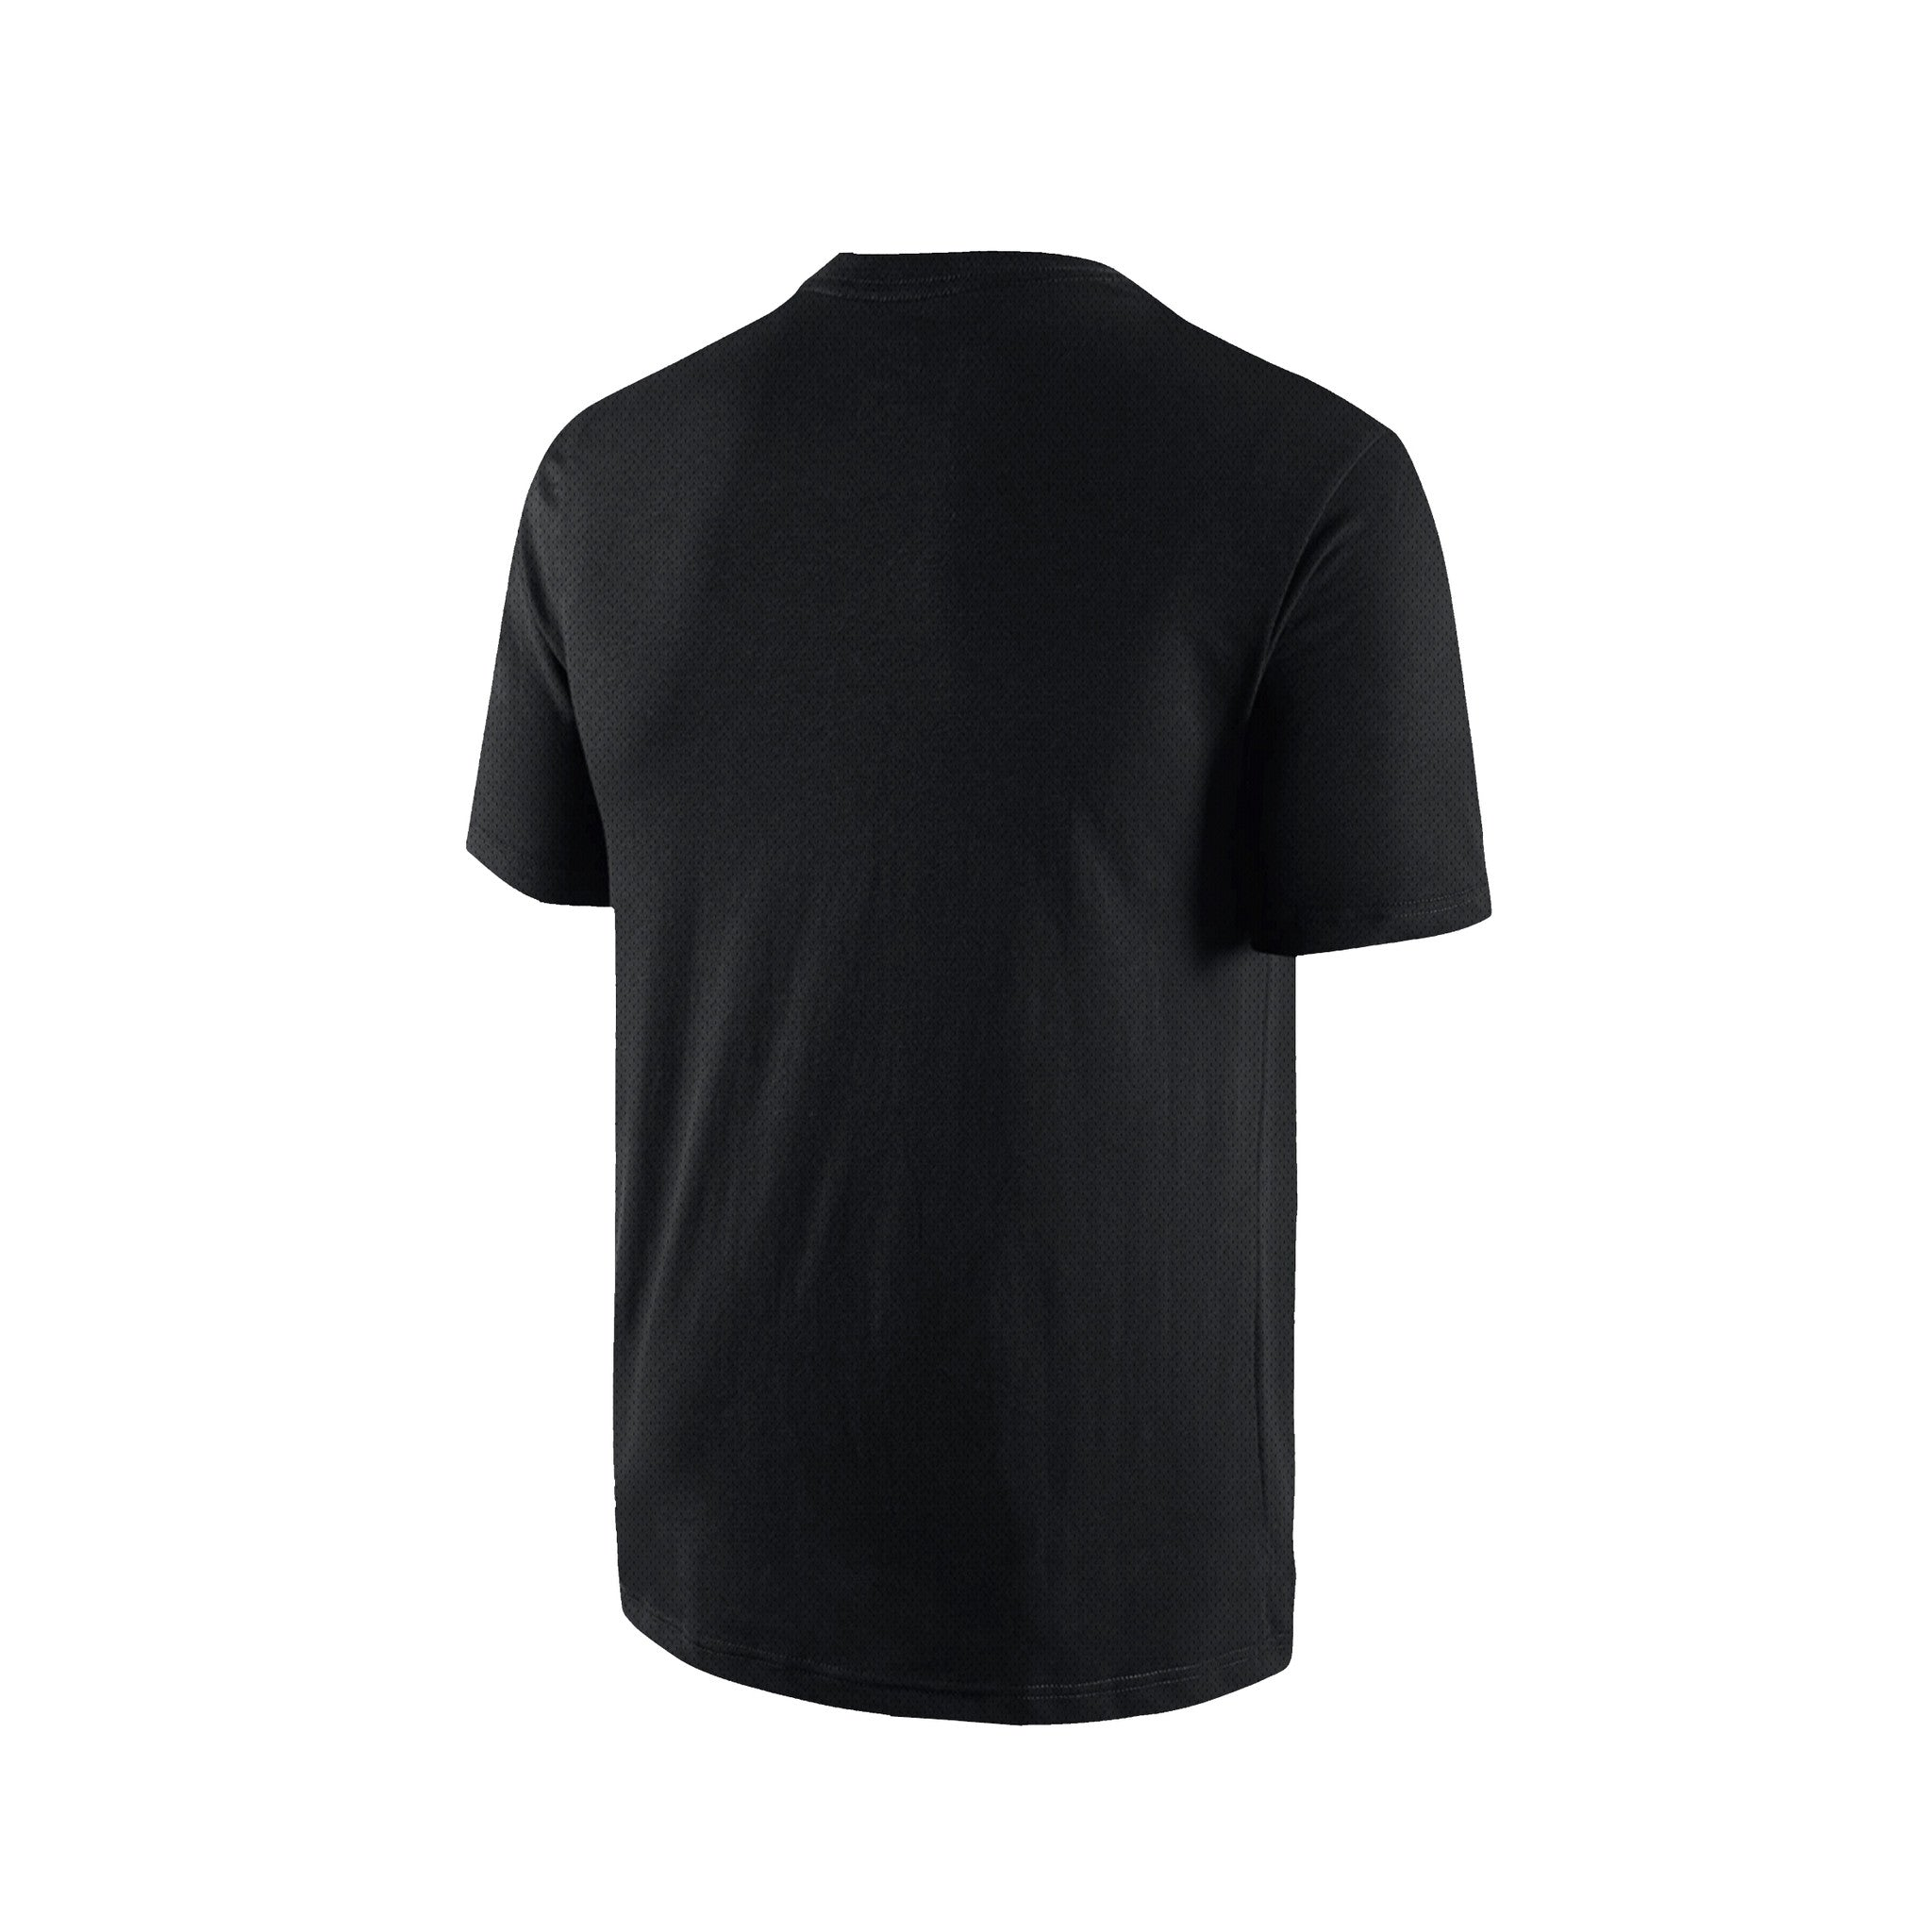 SportyFish Black Series black t-shirt: Toman back view